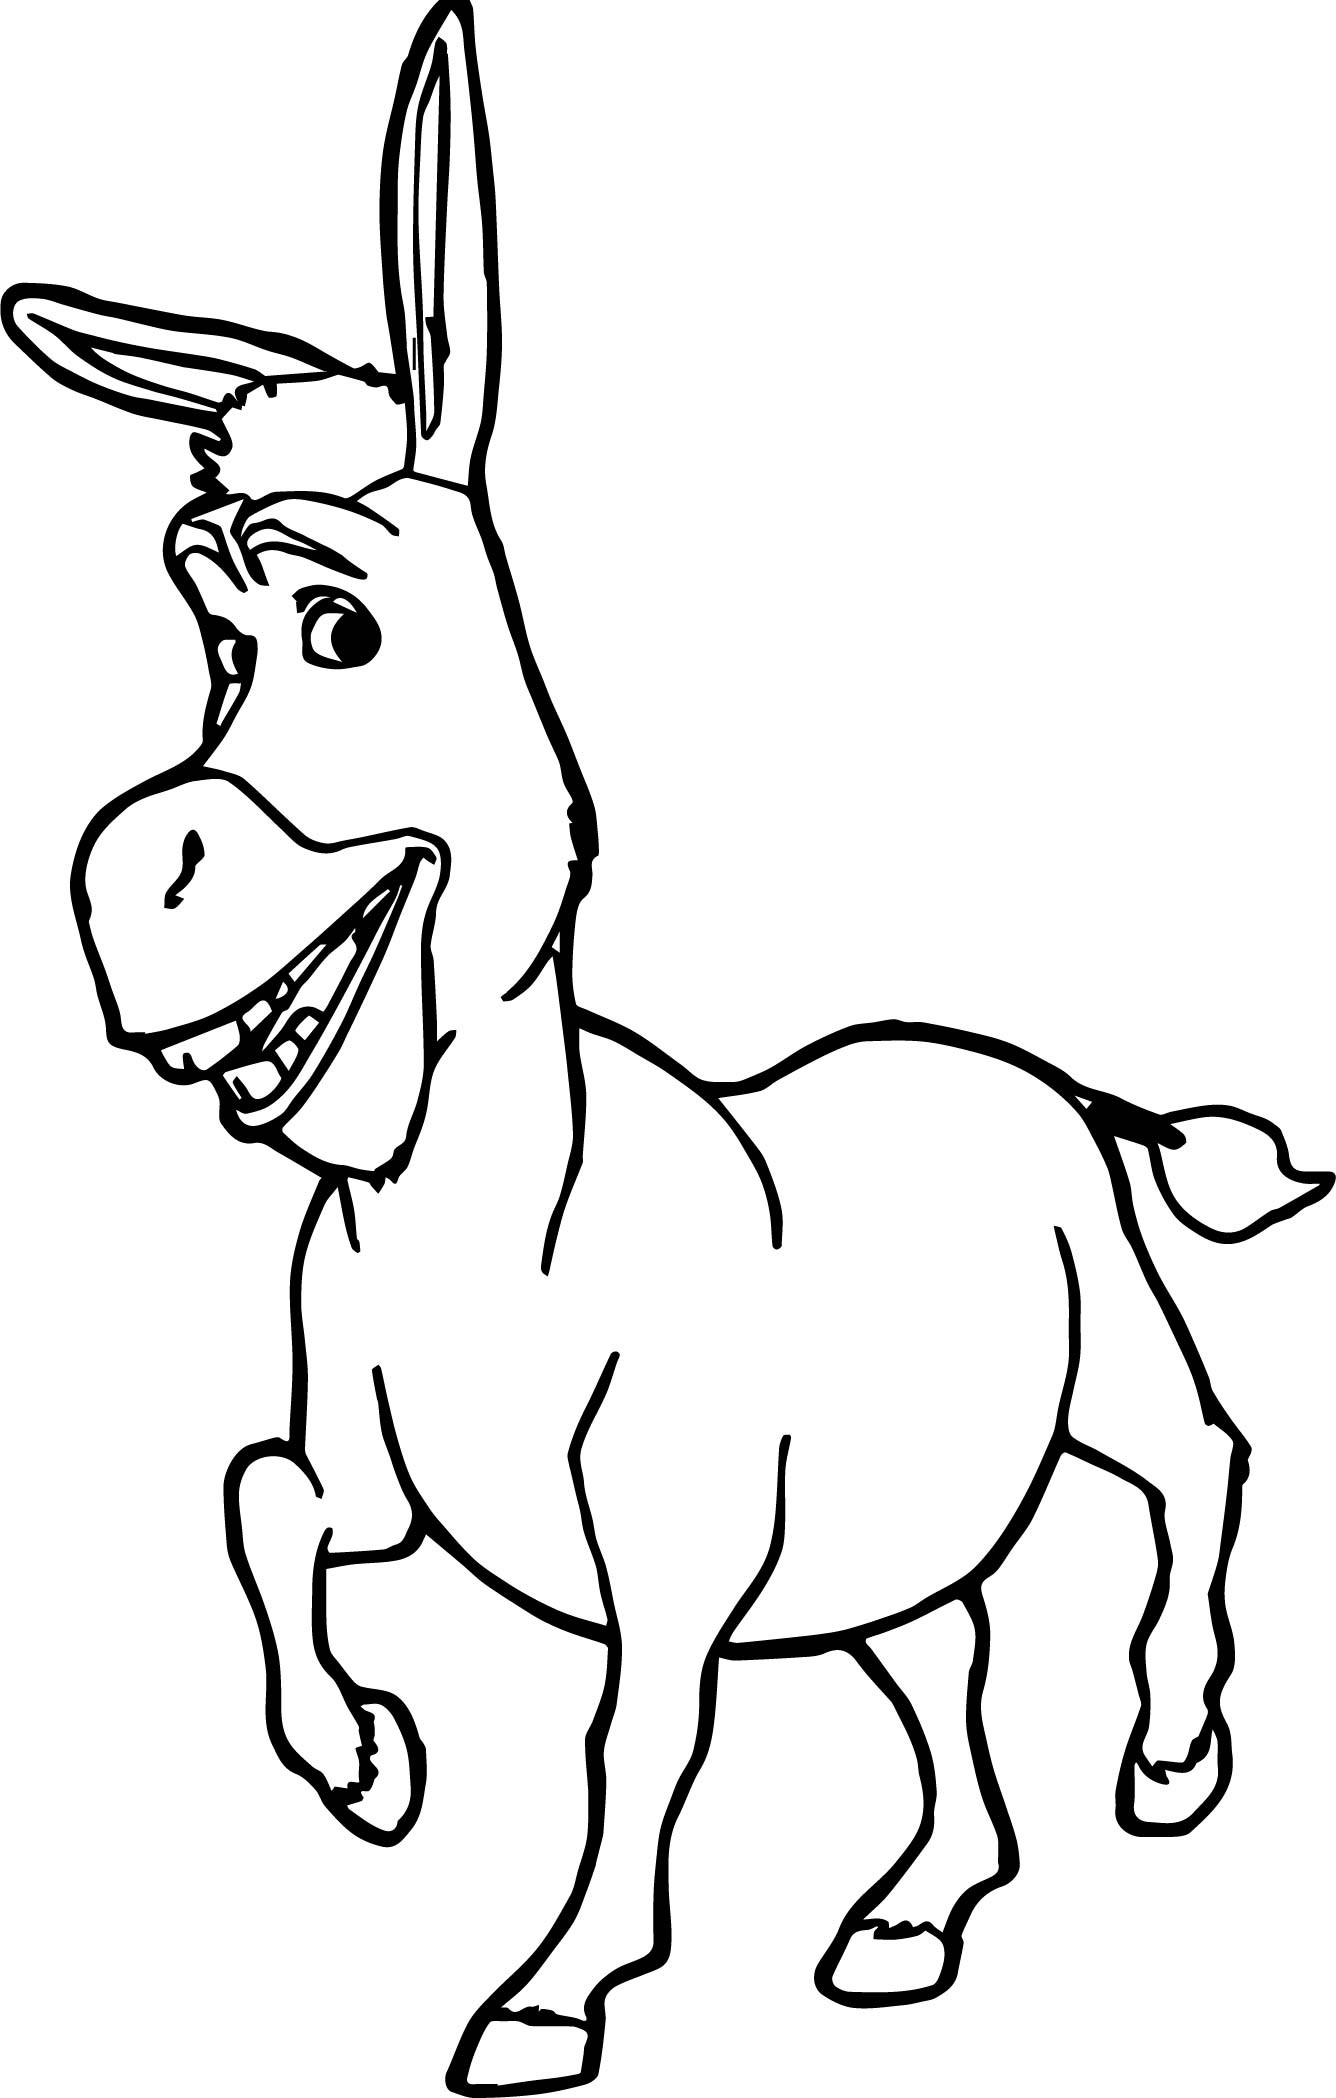 Donkey Drawing Images At Getdrawings Com Free For Personal Use